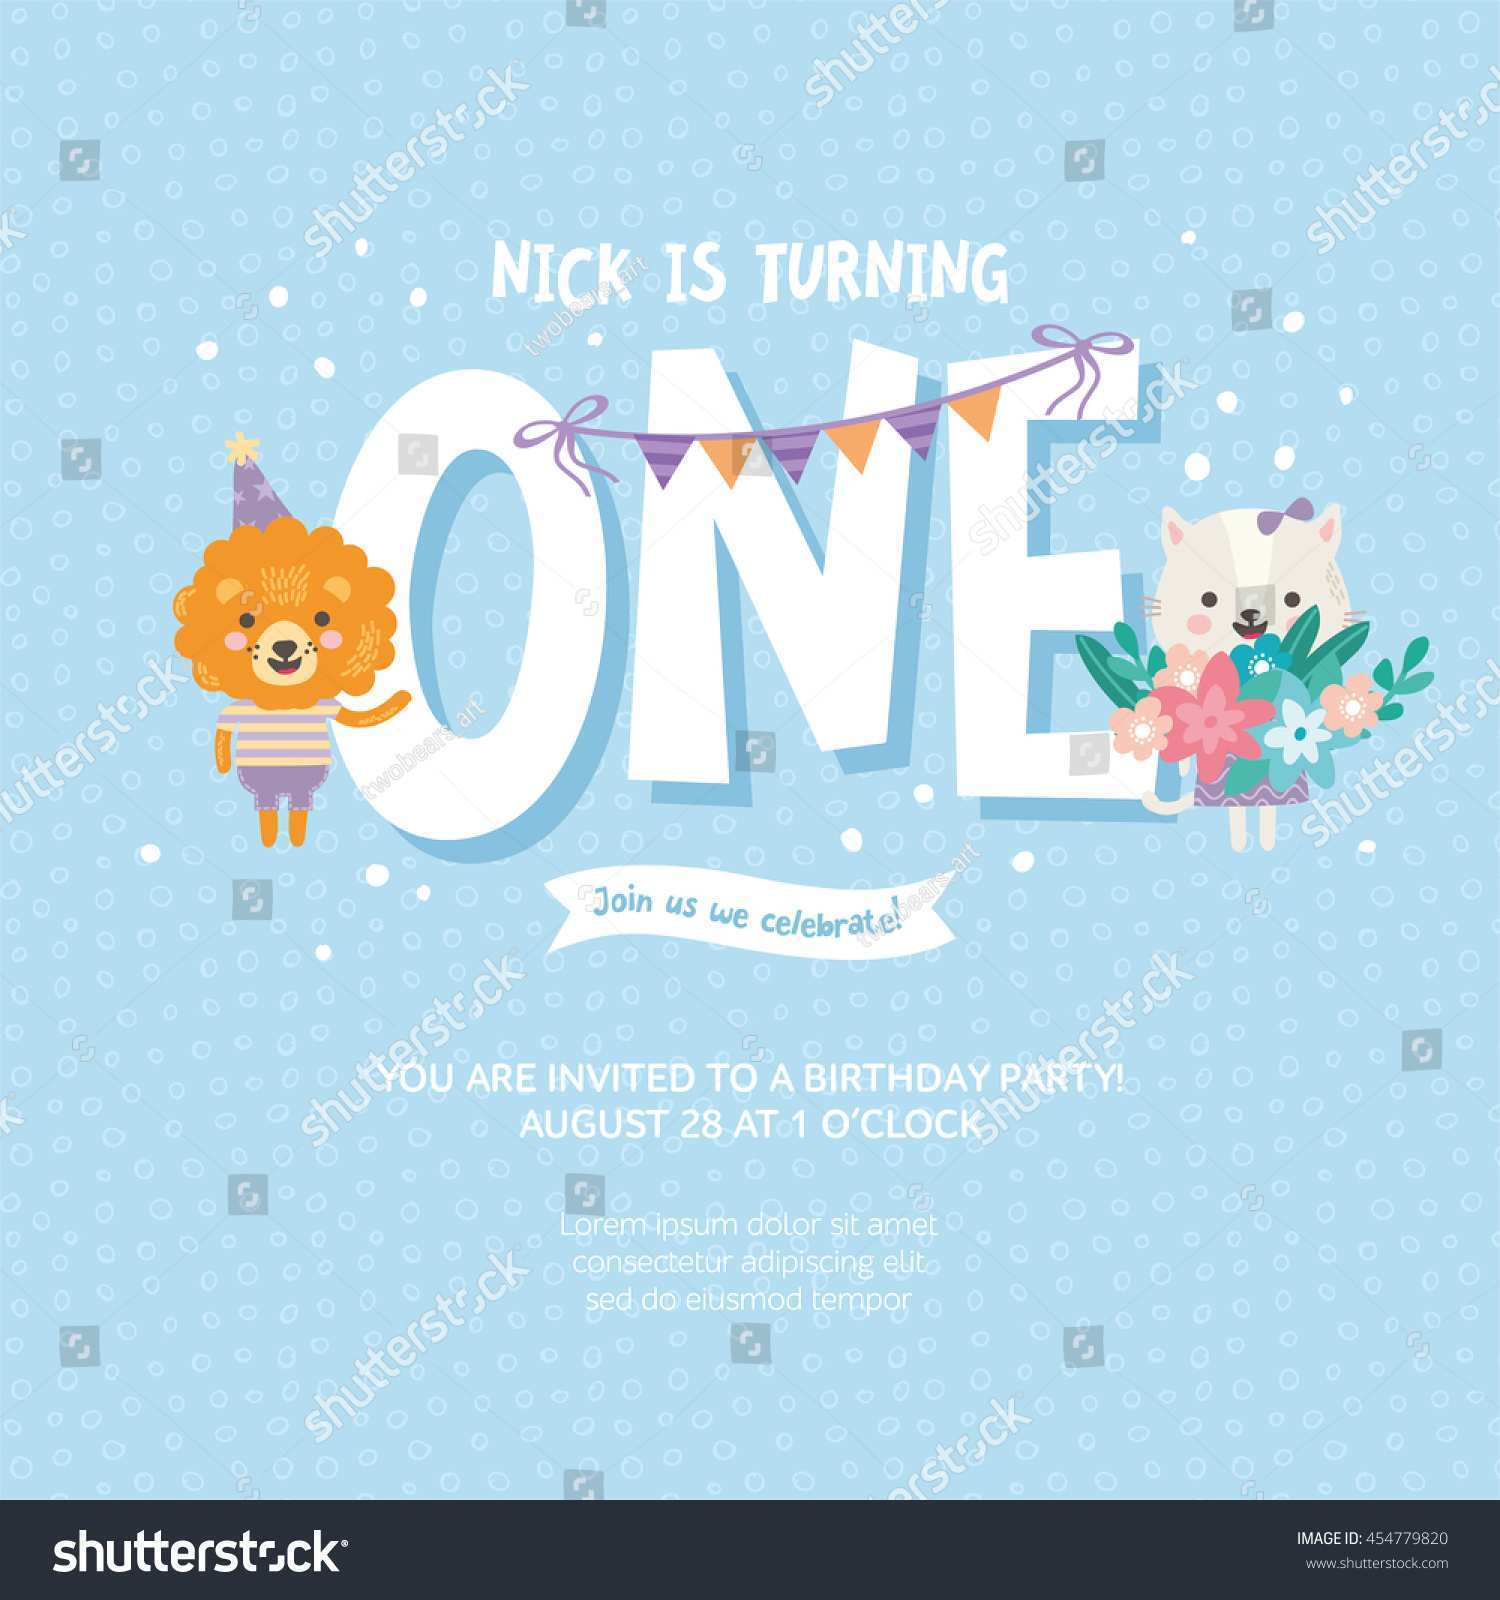 35 Report 1 Year Old Birthday Card Template For Free for 1 Year Old Birthday Card Template